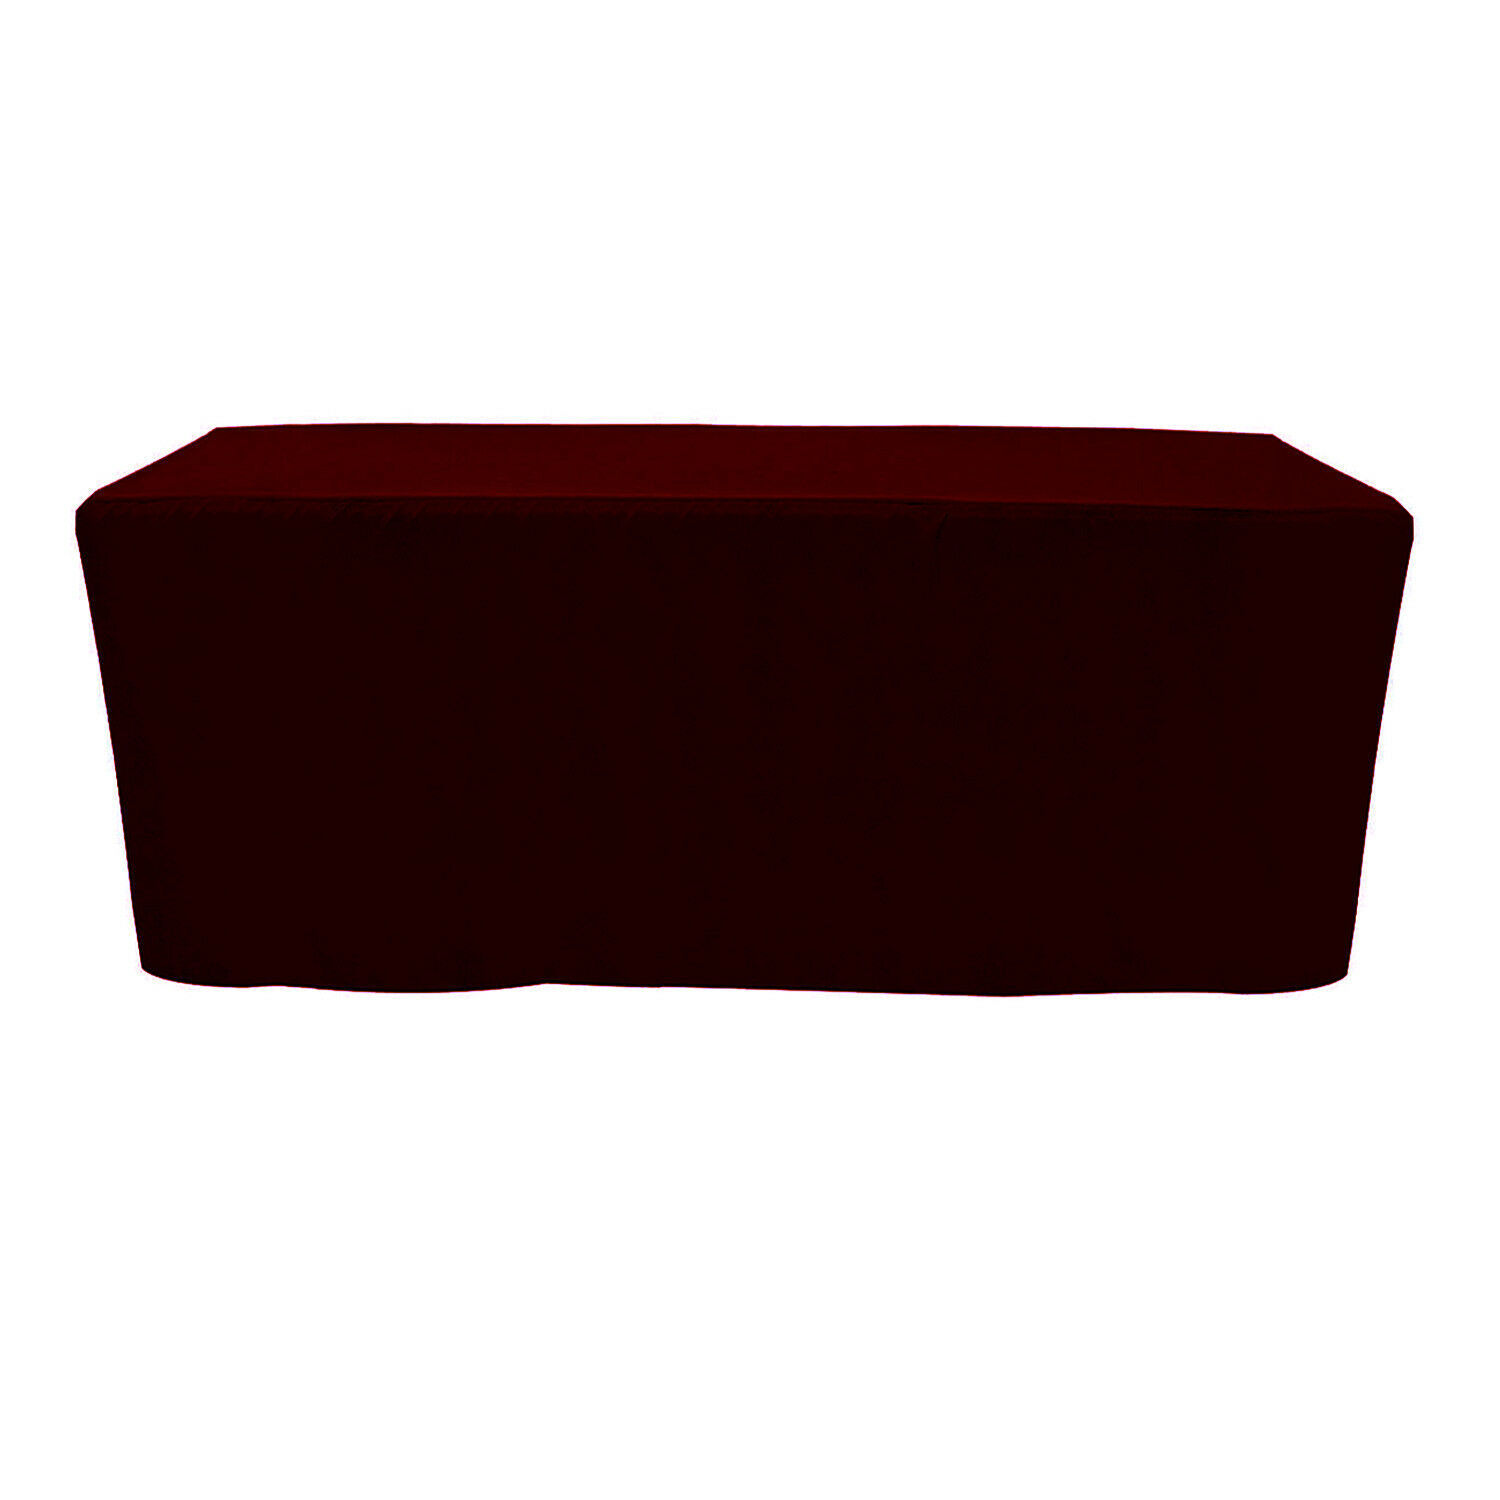 Primary image for Fitted Rectangular Premium Polyester Tablecloth Burgundy 8 ft